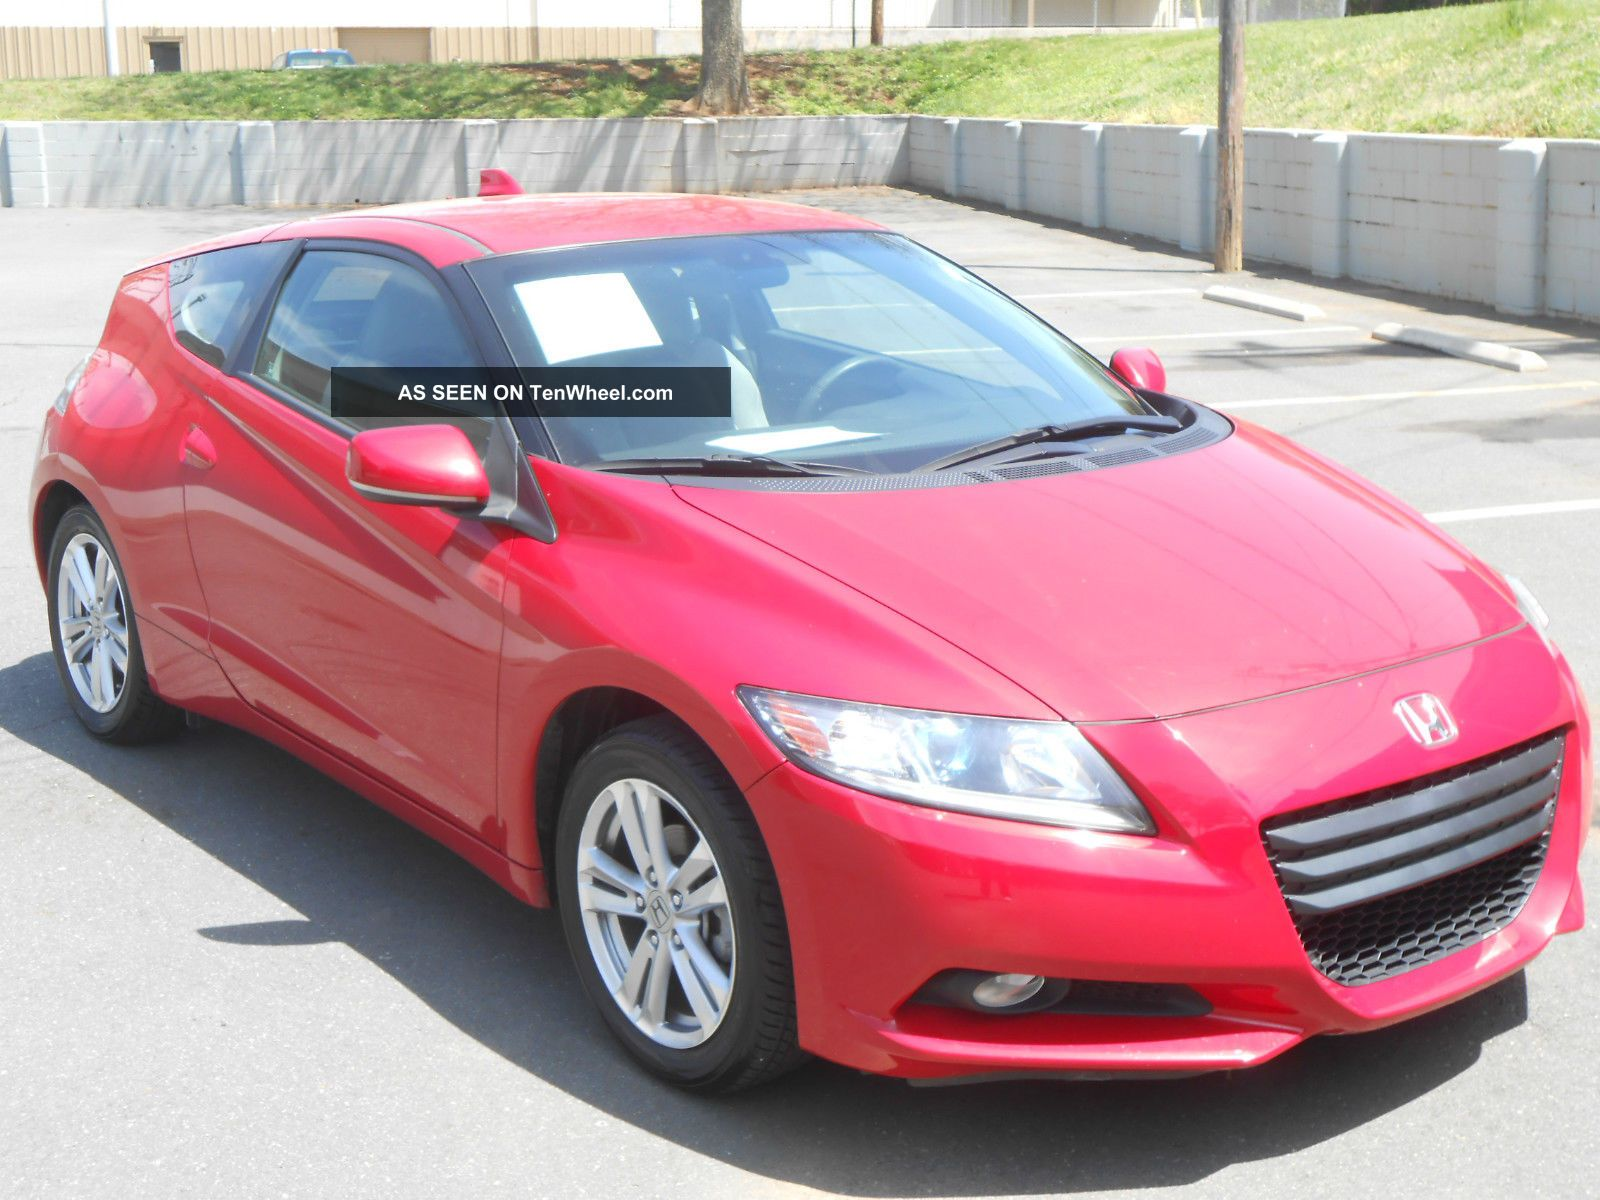 2011 Honda Cr - Z Ex Hatchback 2 - Door 1.  5l,  Red, ,  Loaded CR-Z photo